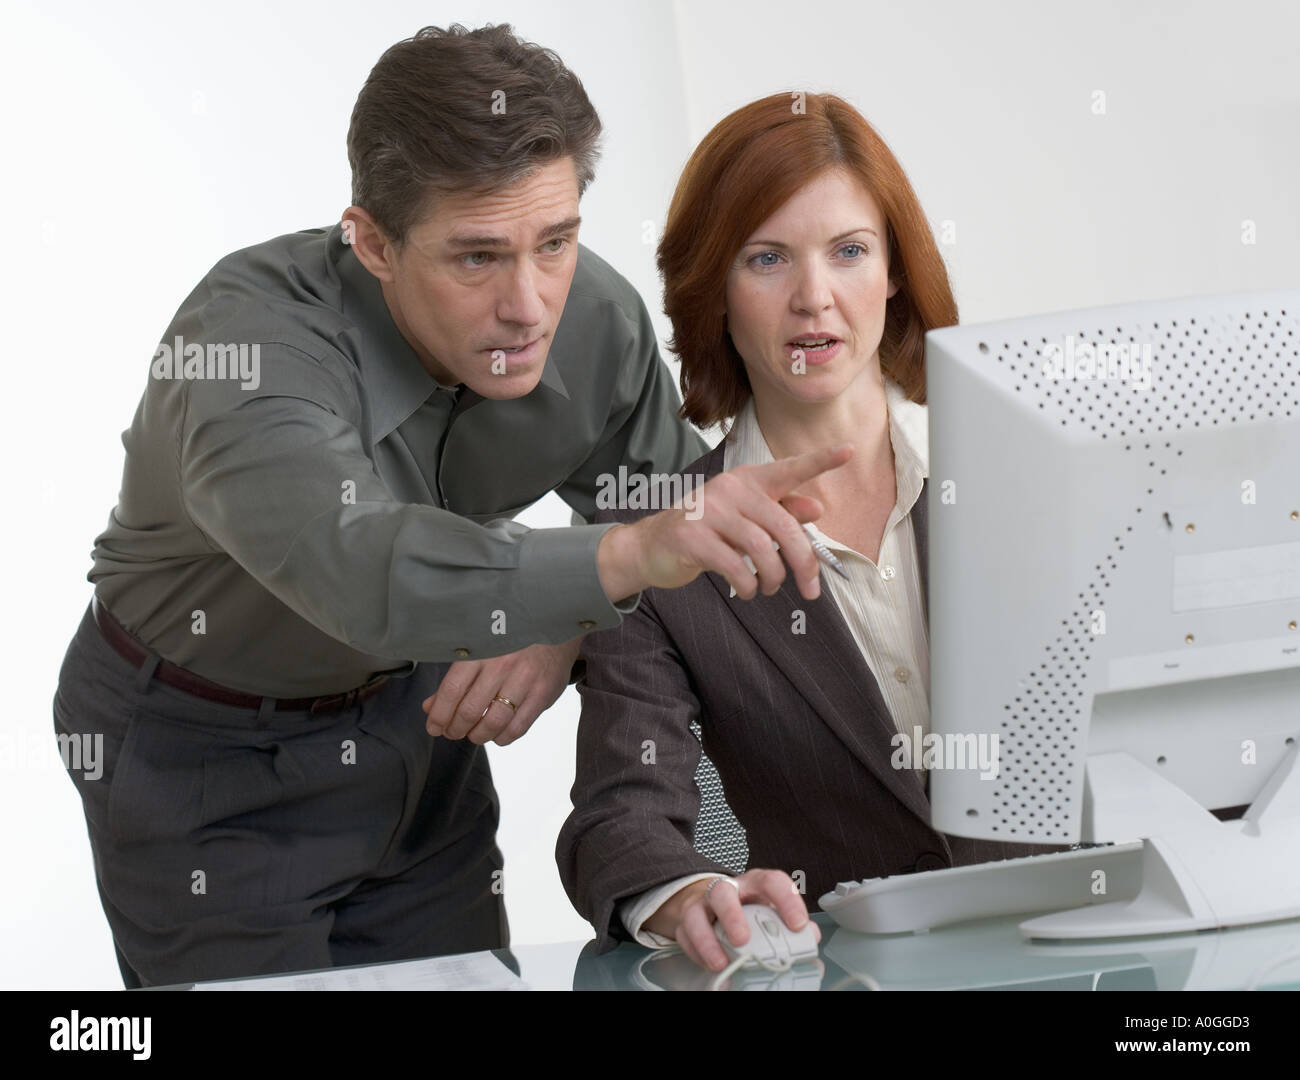 Business people looking at computer screen - Stock Image